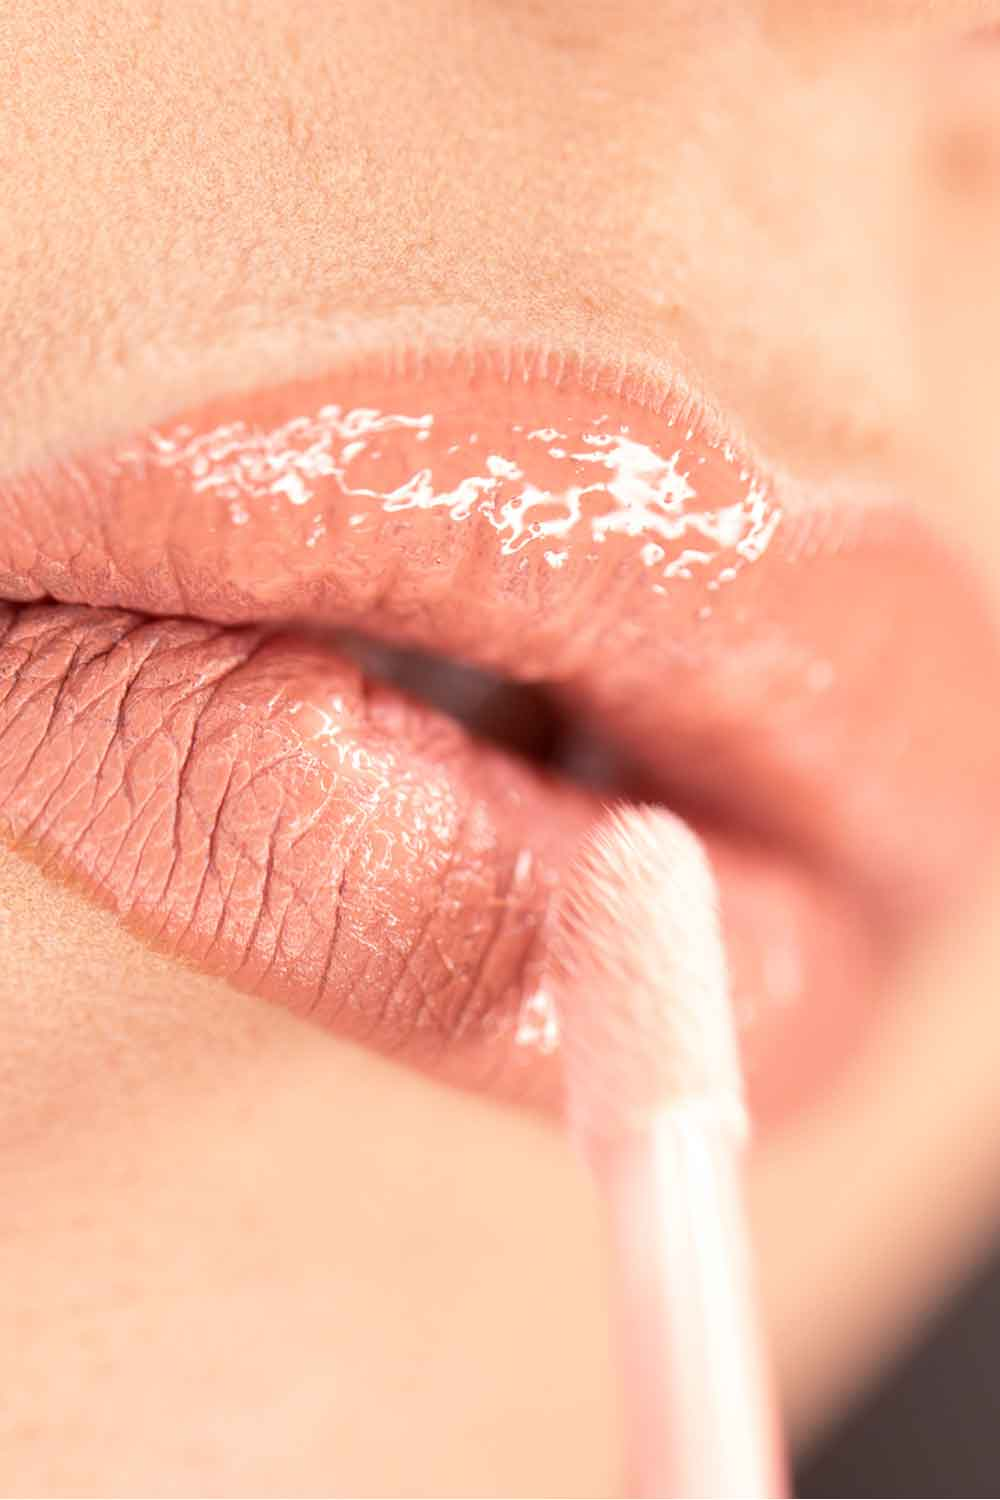 Intensive Vegan Lip Treatments for Chapped Dry Lips